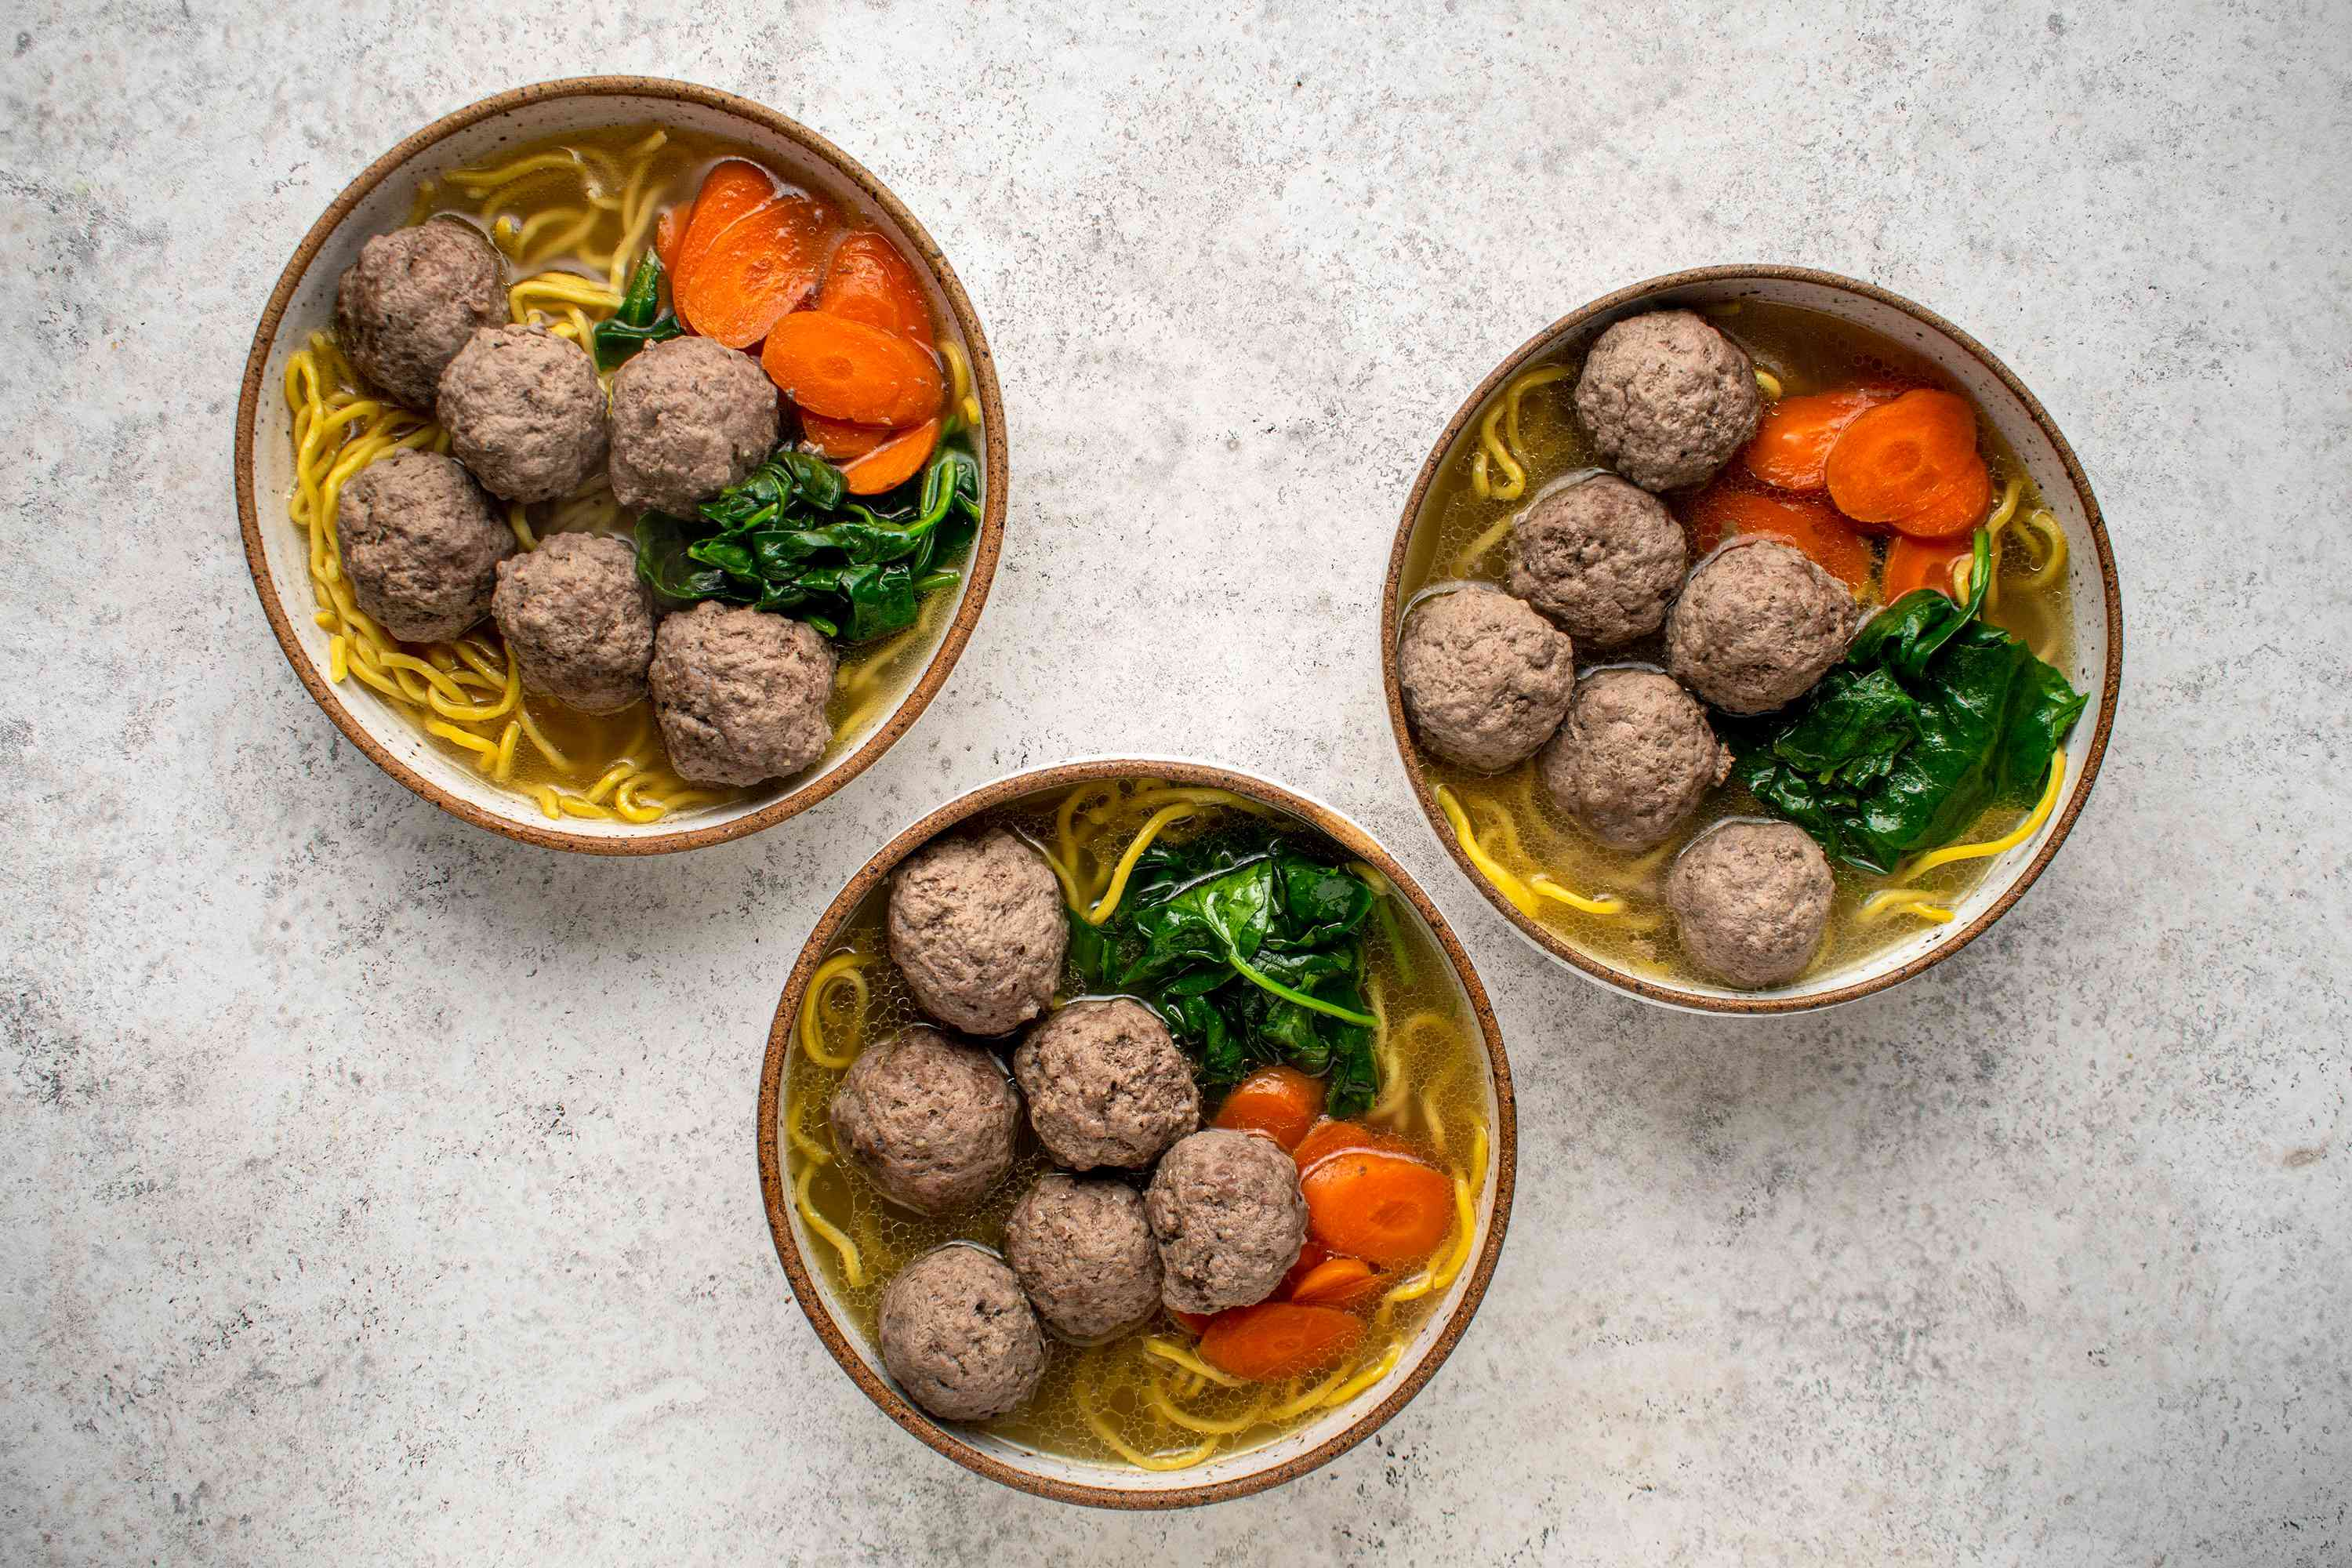 Ladle the hot soup and meatballs directly into the bowls